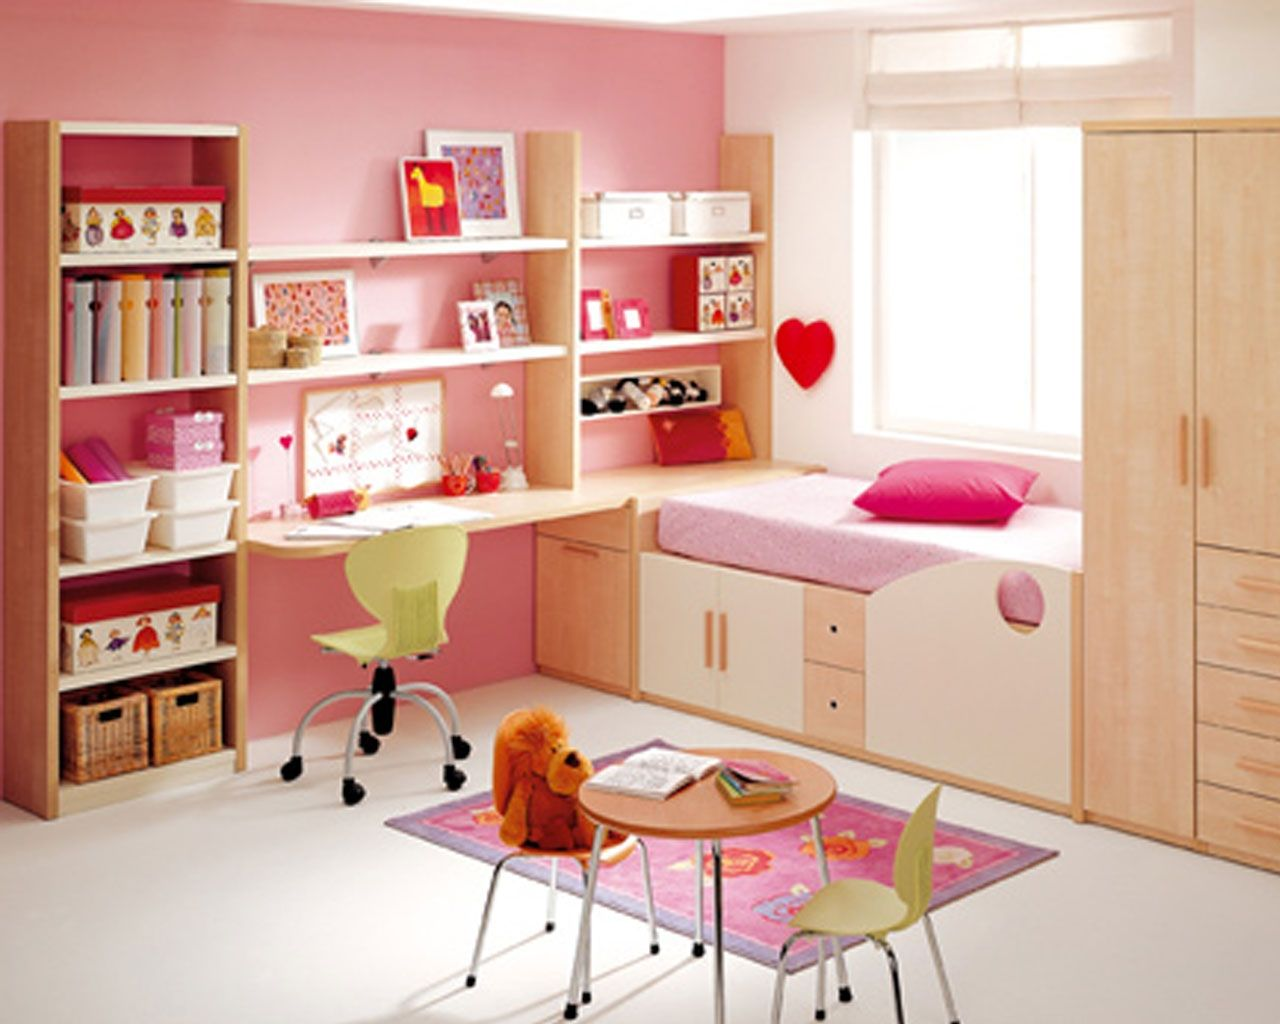 Bedroom decor ideas for girls - Bedroom Sweet Decorating Ideas For Girls Bedroom With One Study Table Cozy Inspiration Decorating Ideas For